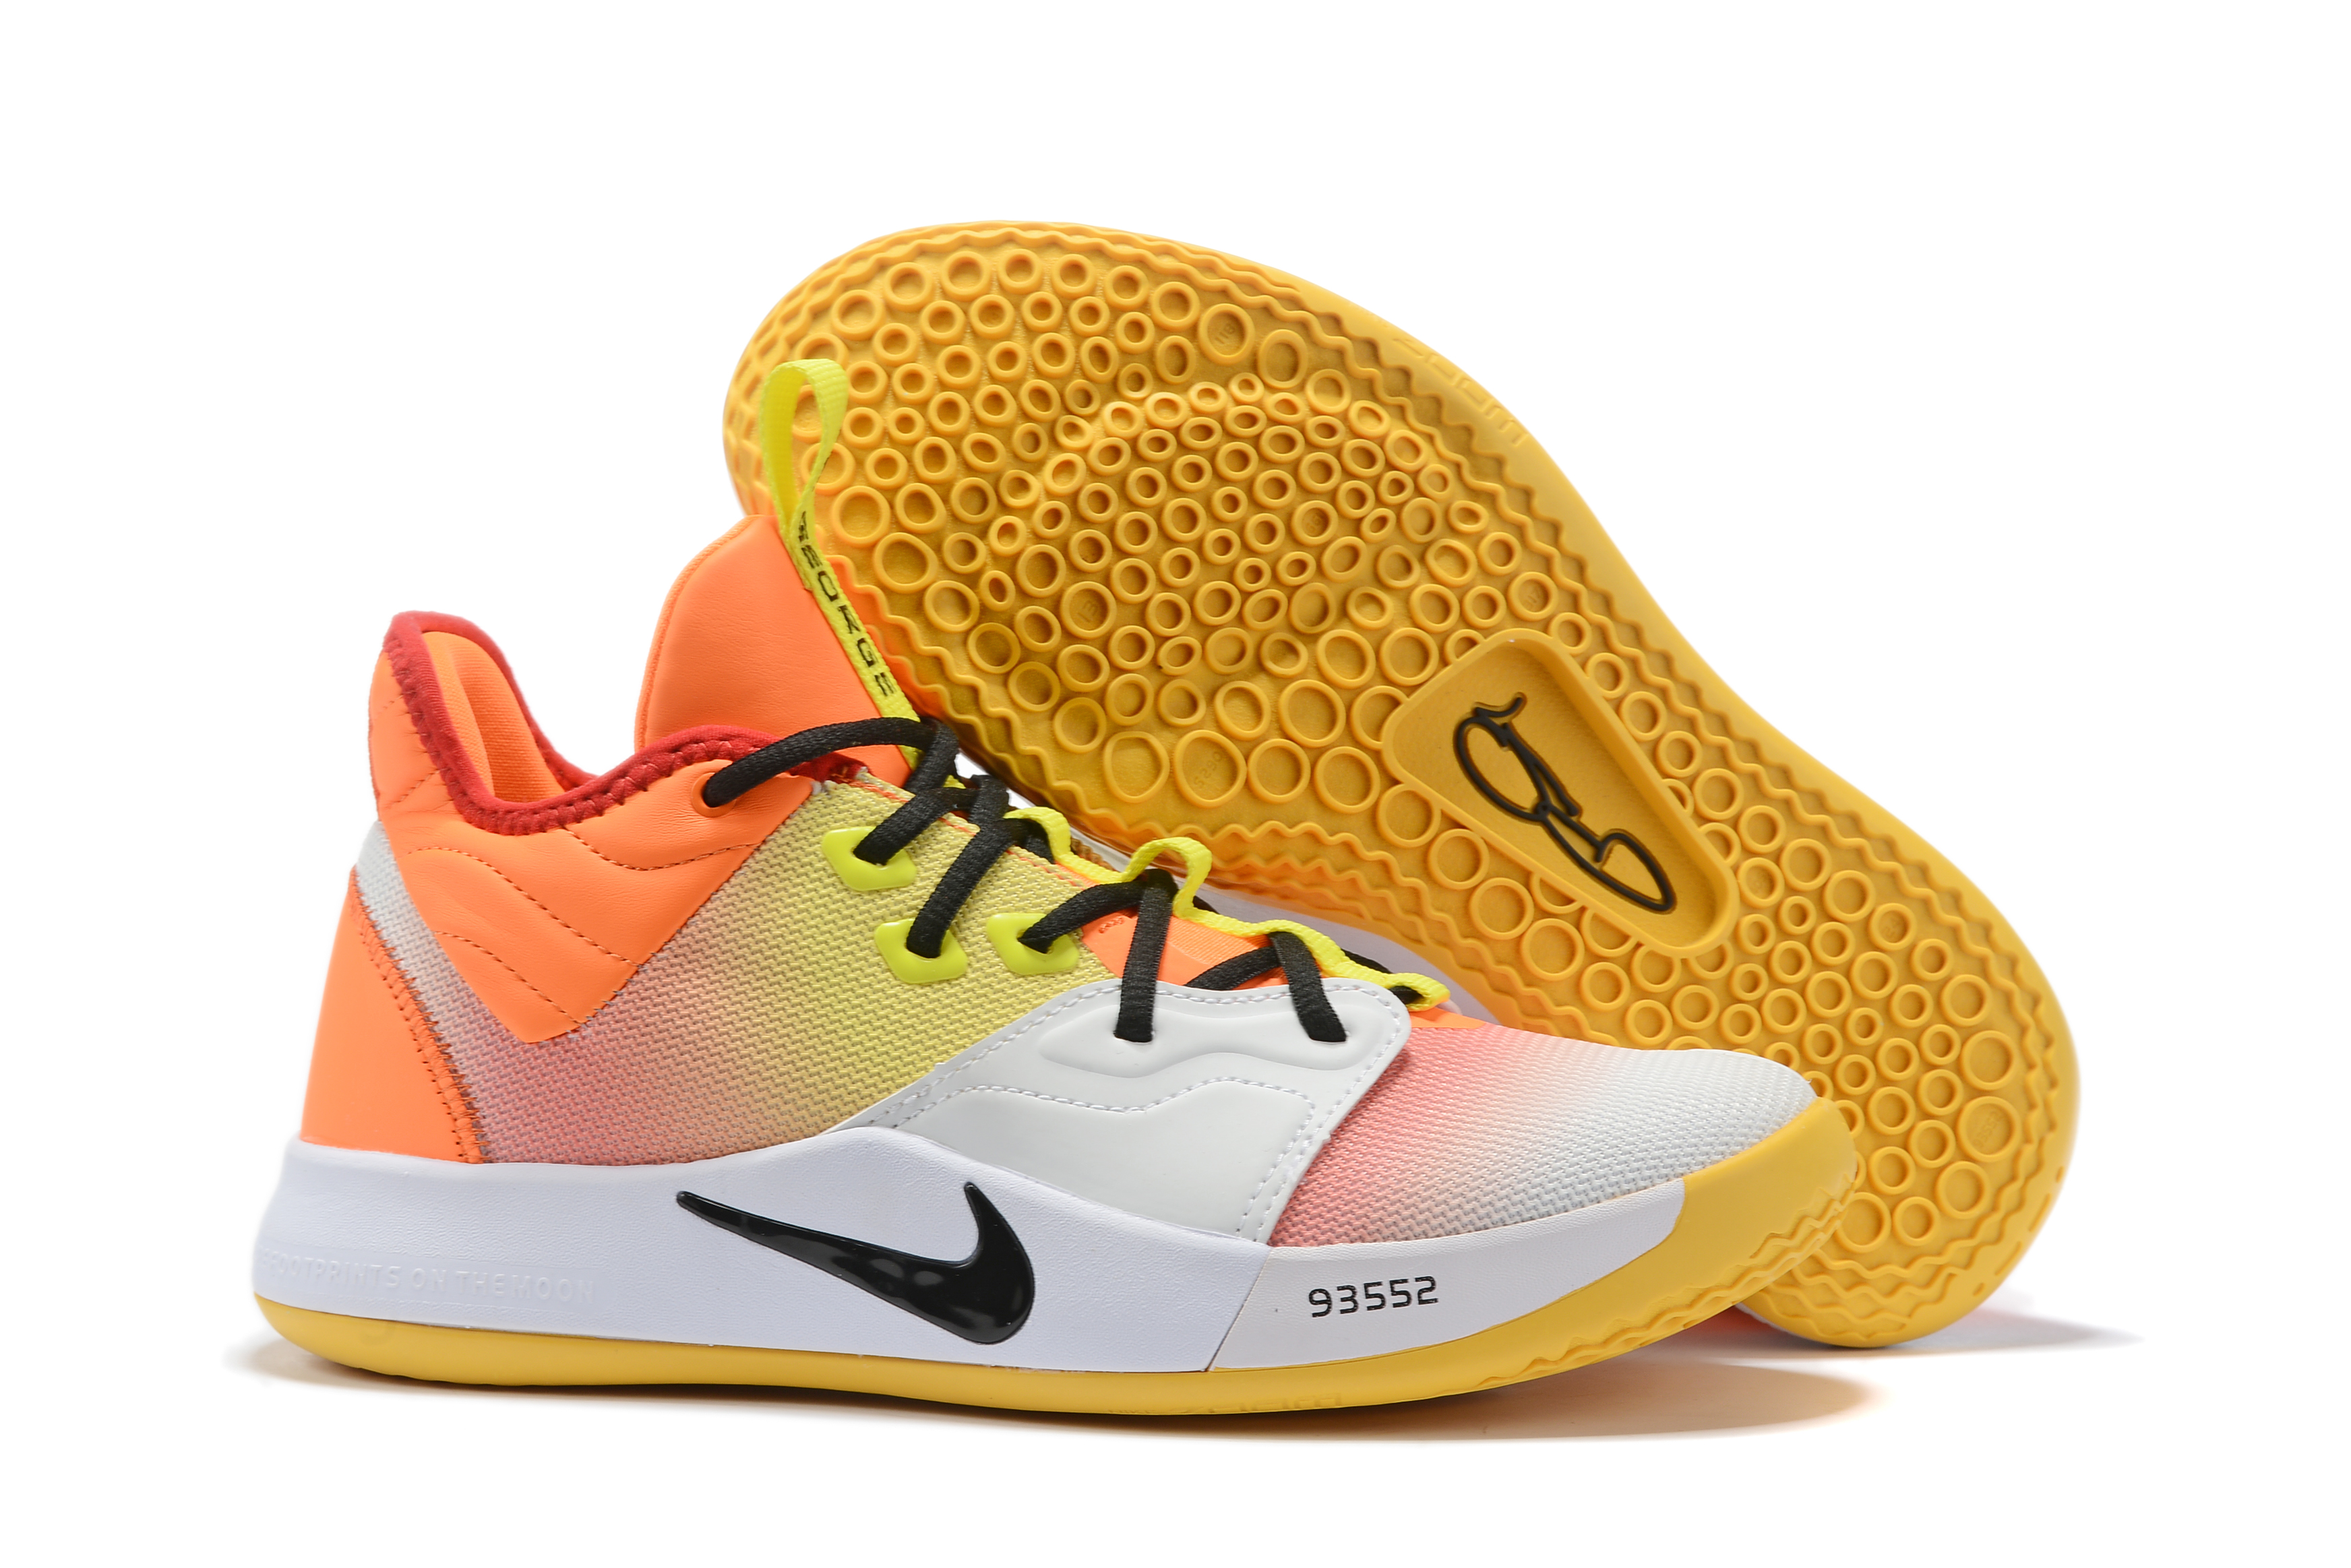 New Nike PG 3 Orange Yellow Black White Shoes